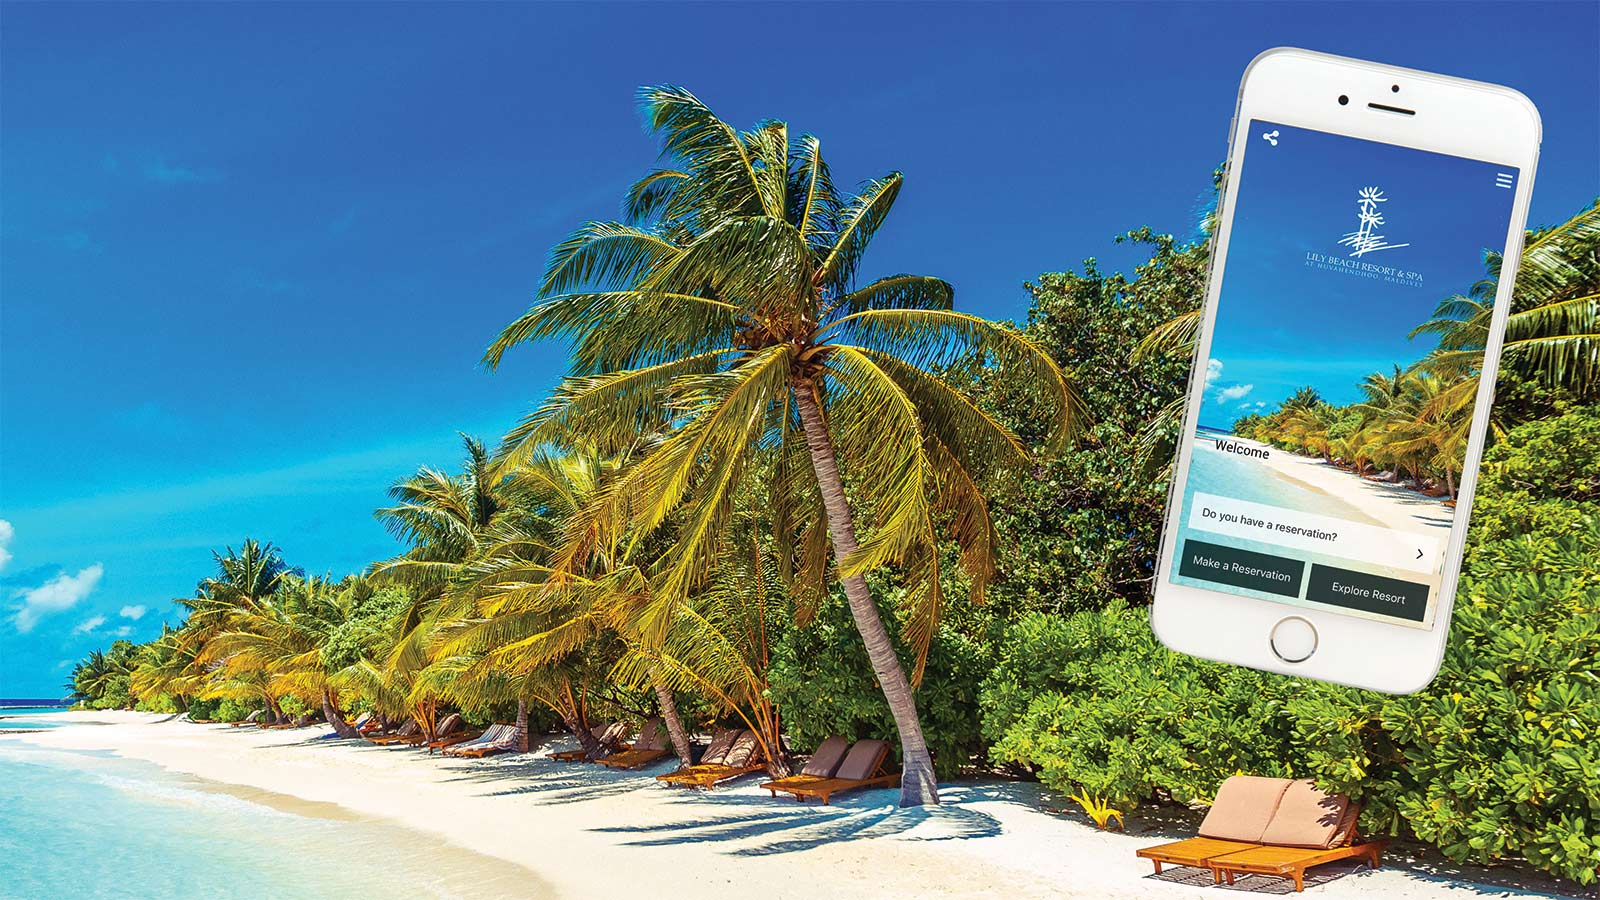 Lily Beach Maldives App